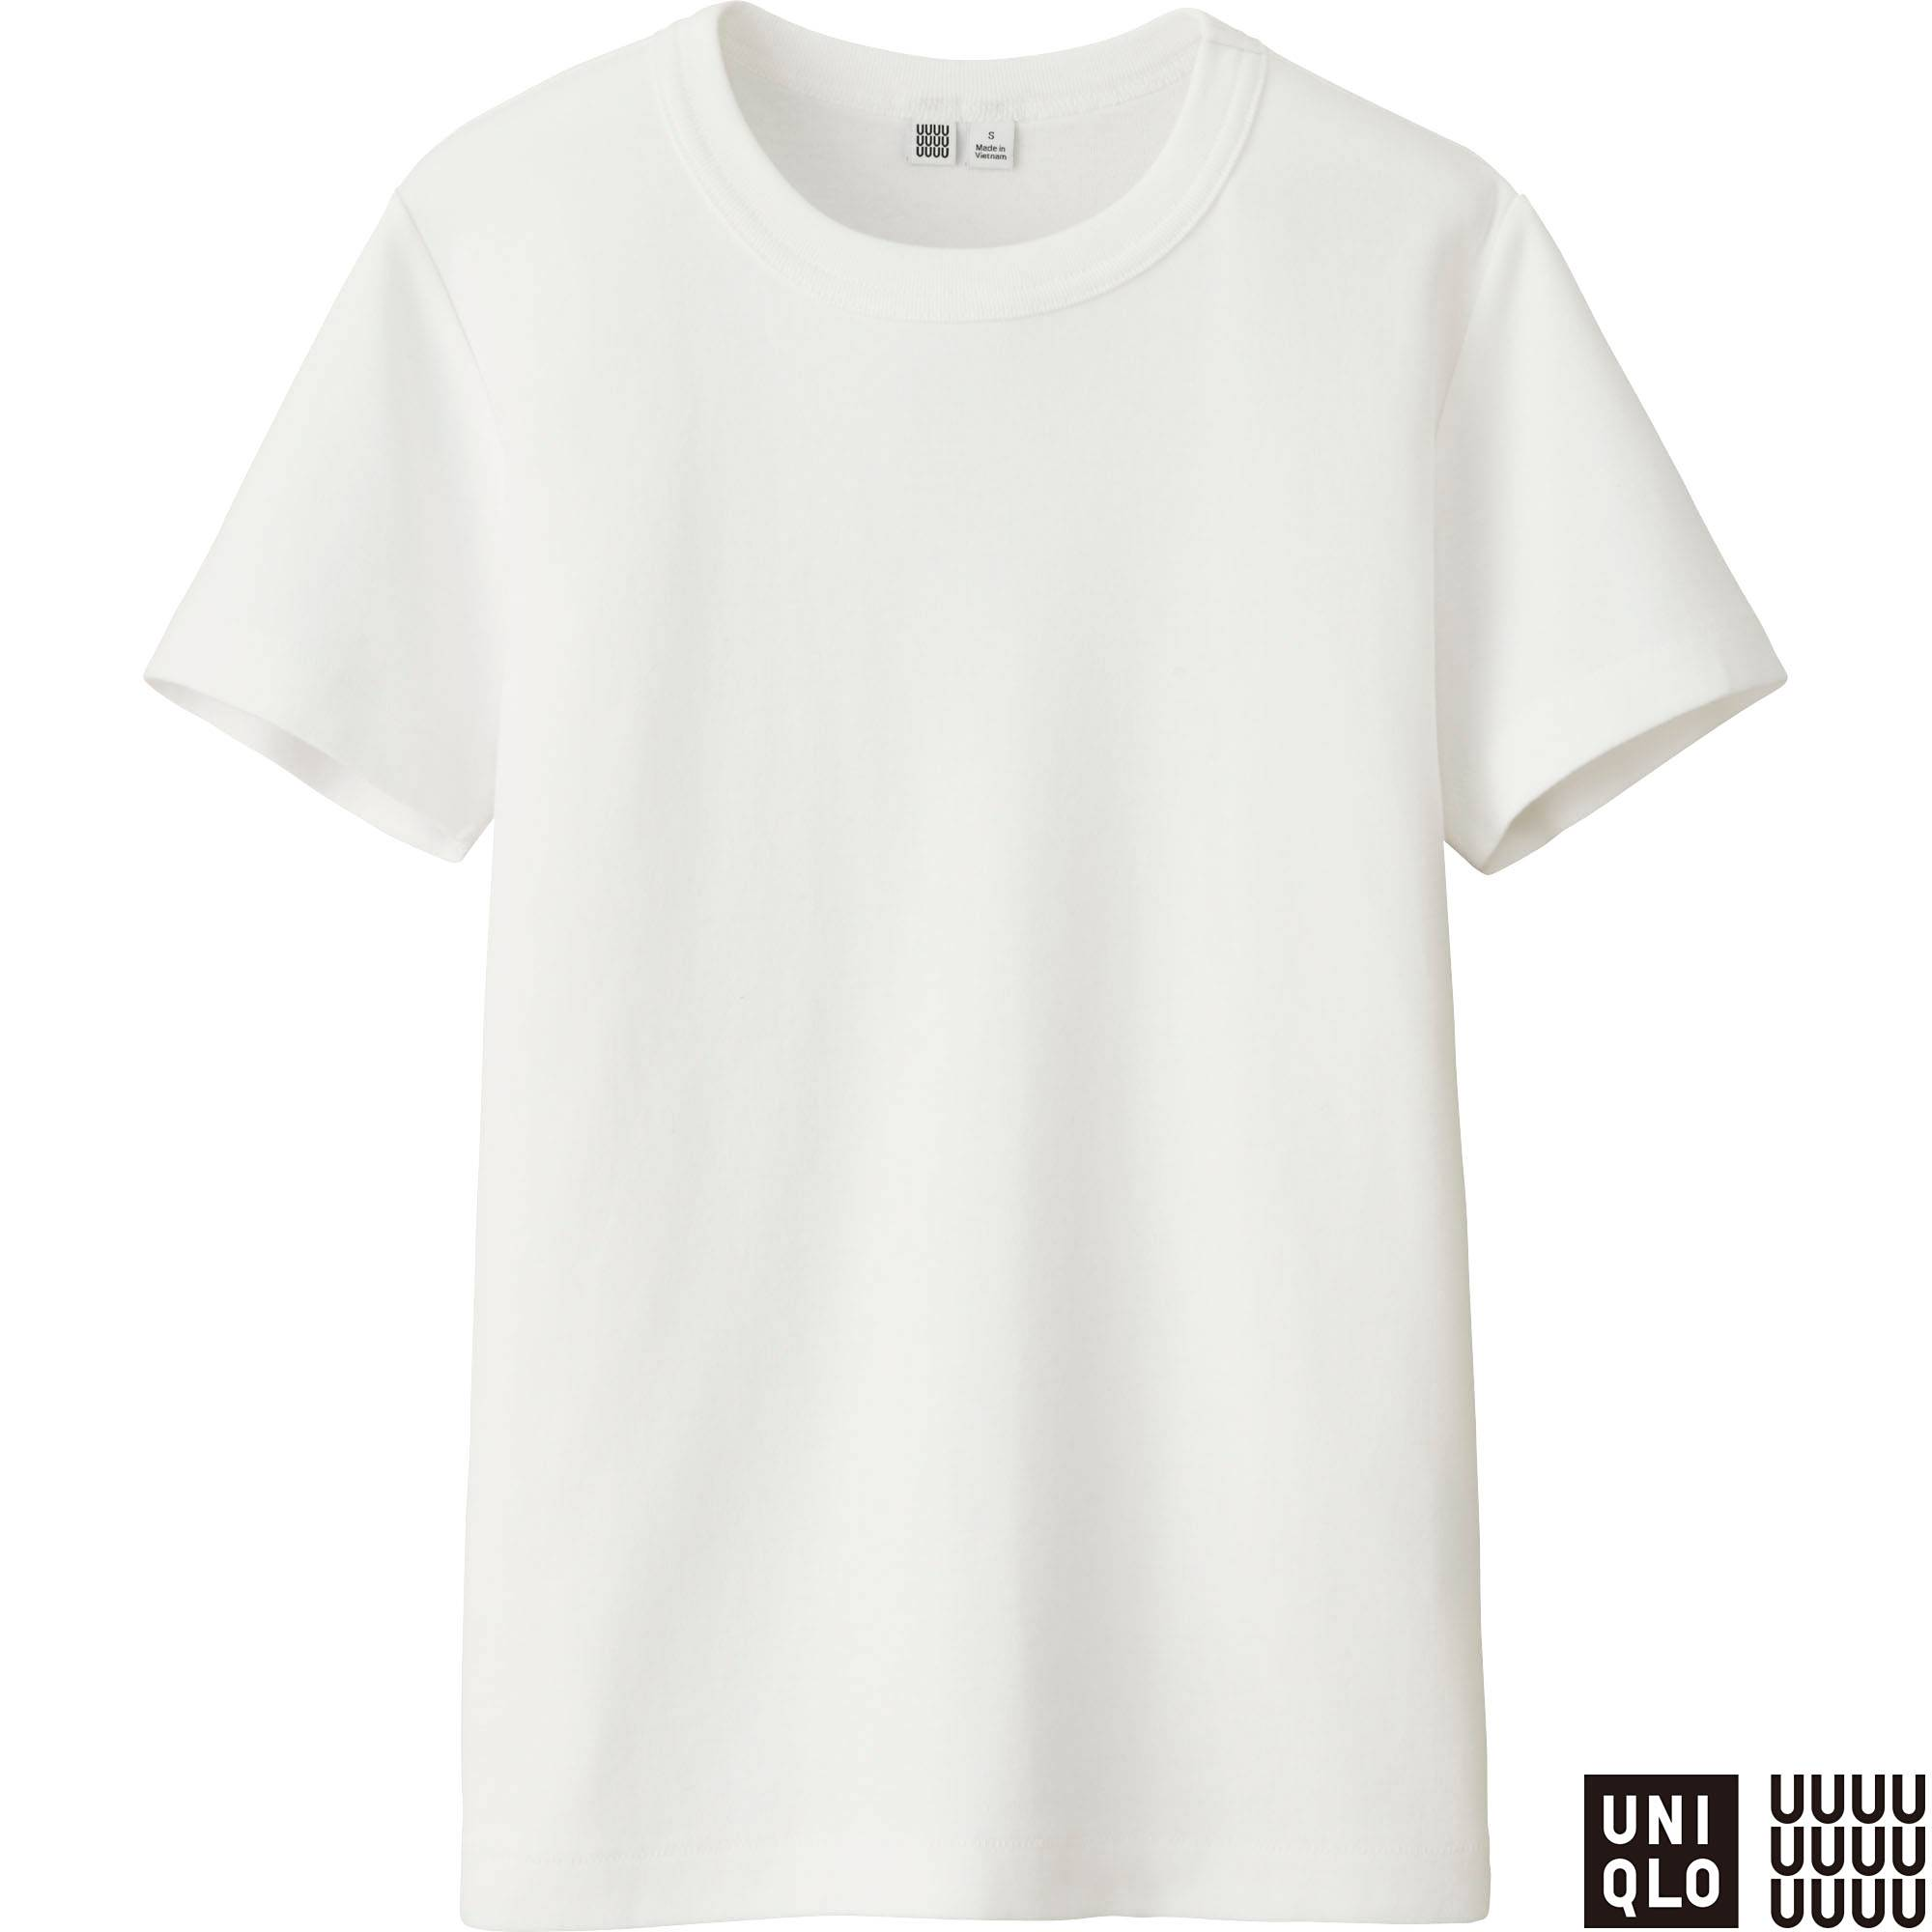 Best White T Shirts- Gap 09ded1cec